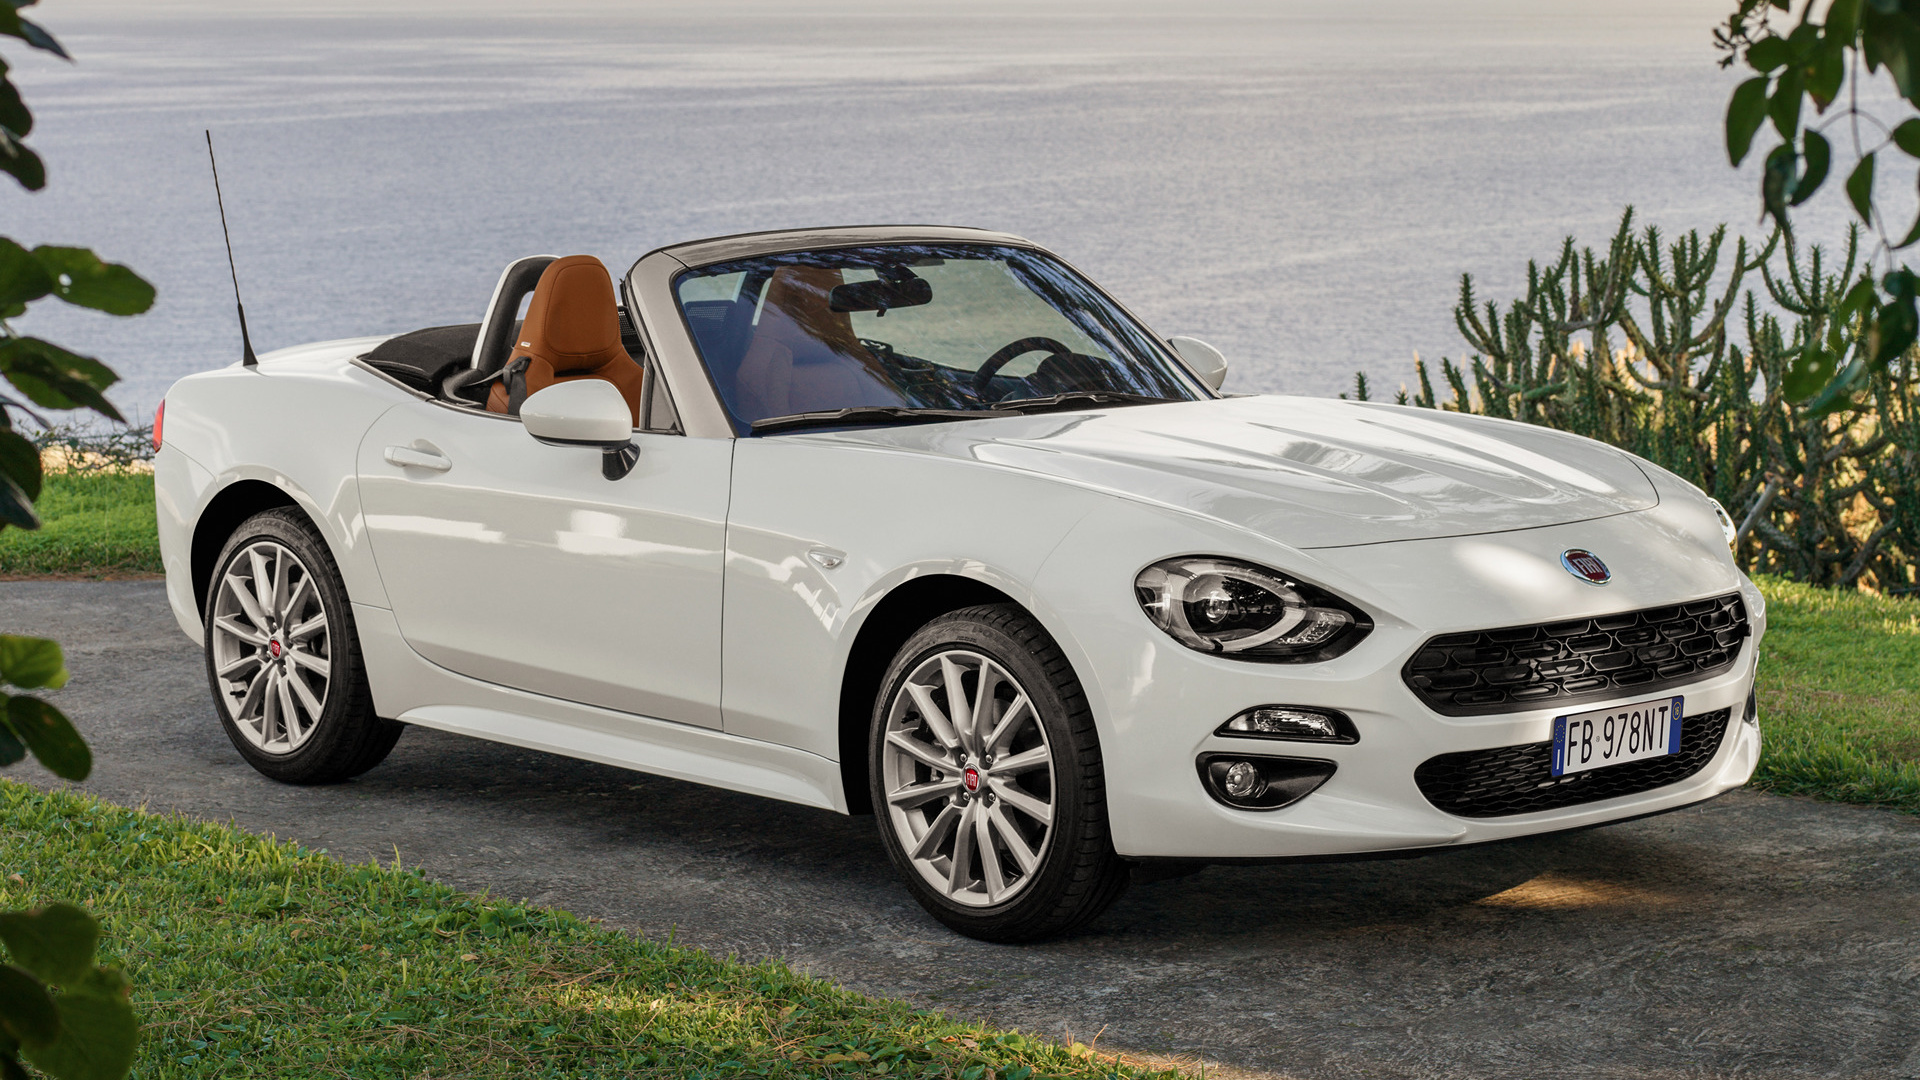 Fiat Spider Wallpaper Hd